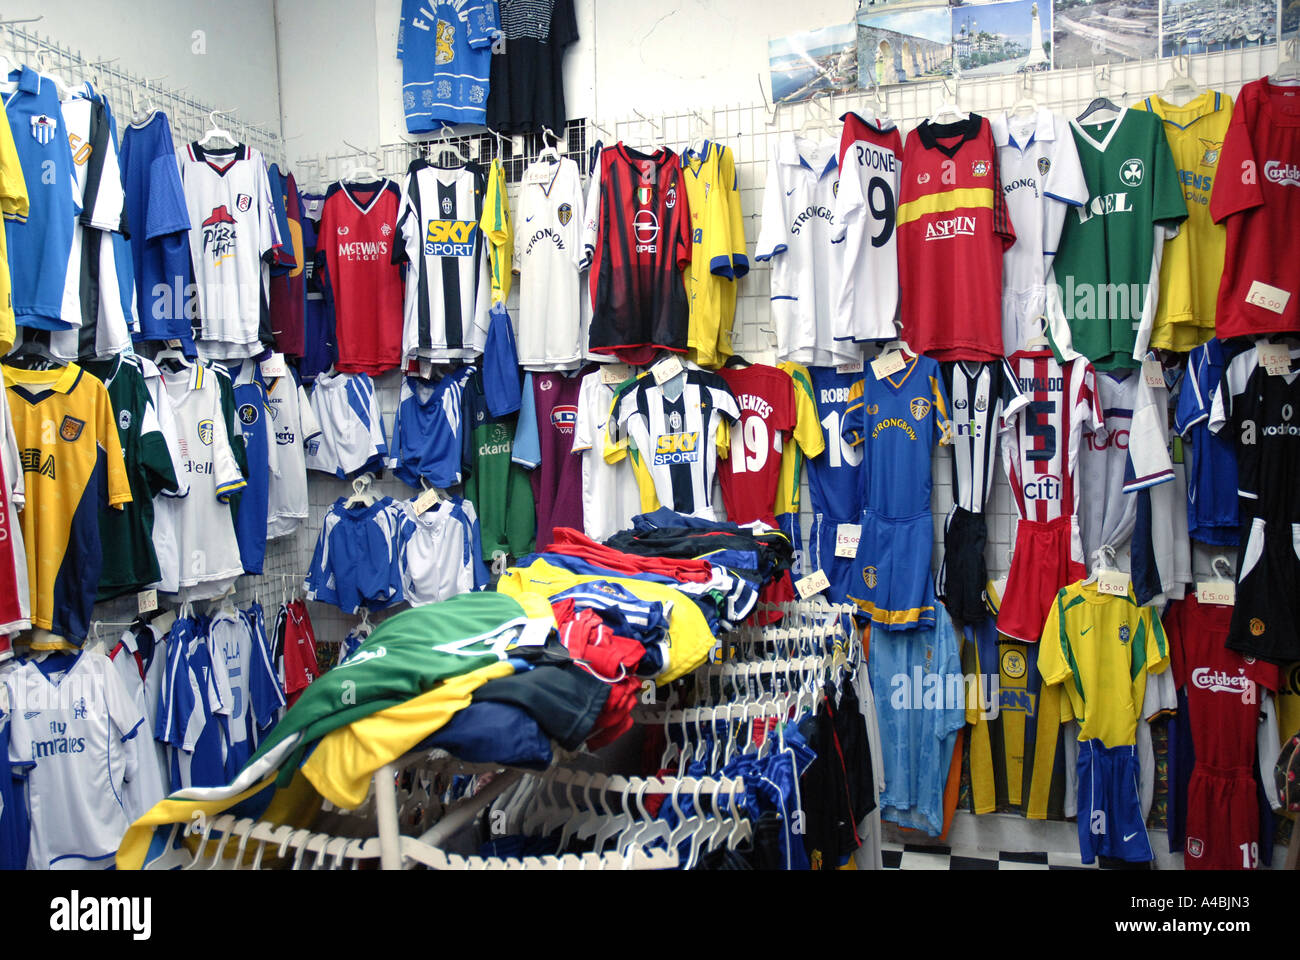 Football shirts in a shop Larnaka Cyprus Stock Photo  6284498 - Alamy a76afc857f5c